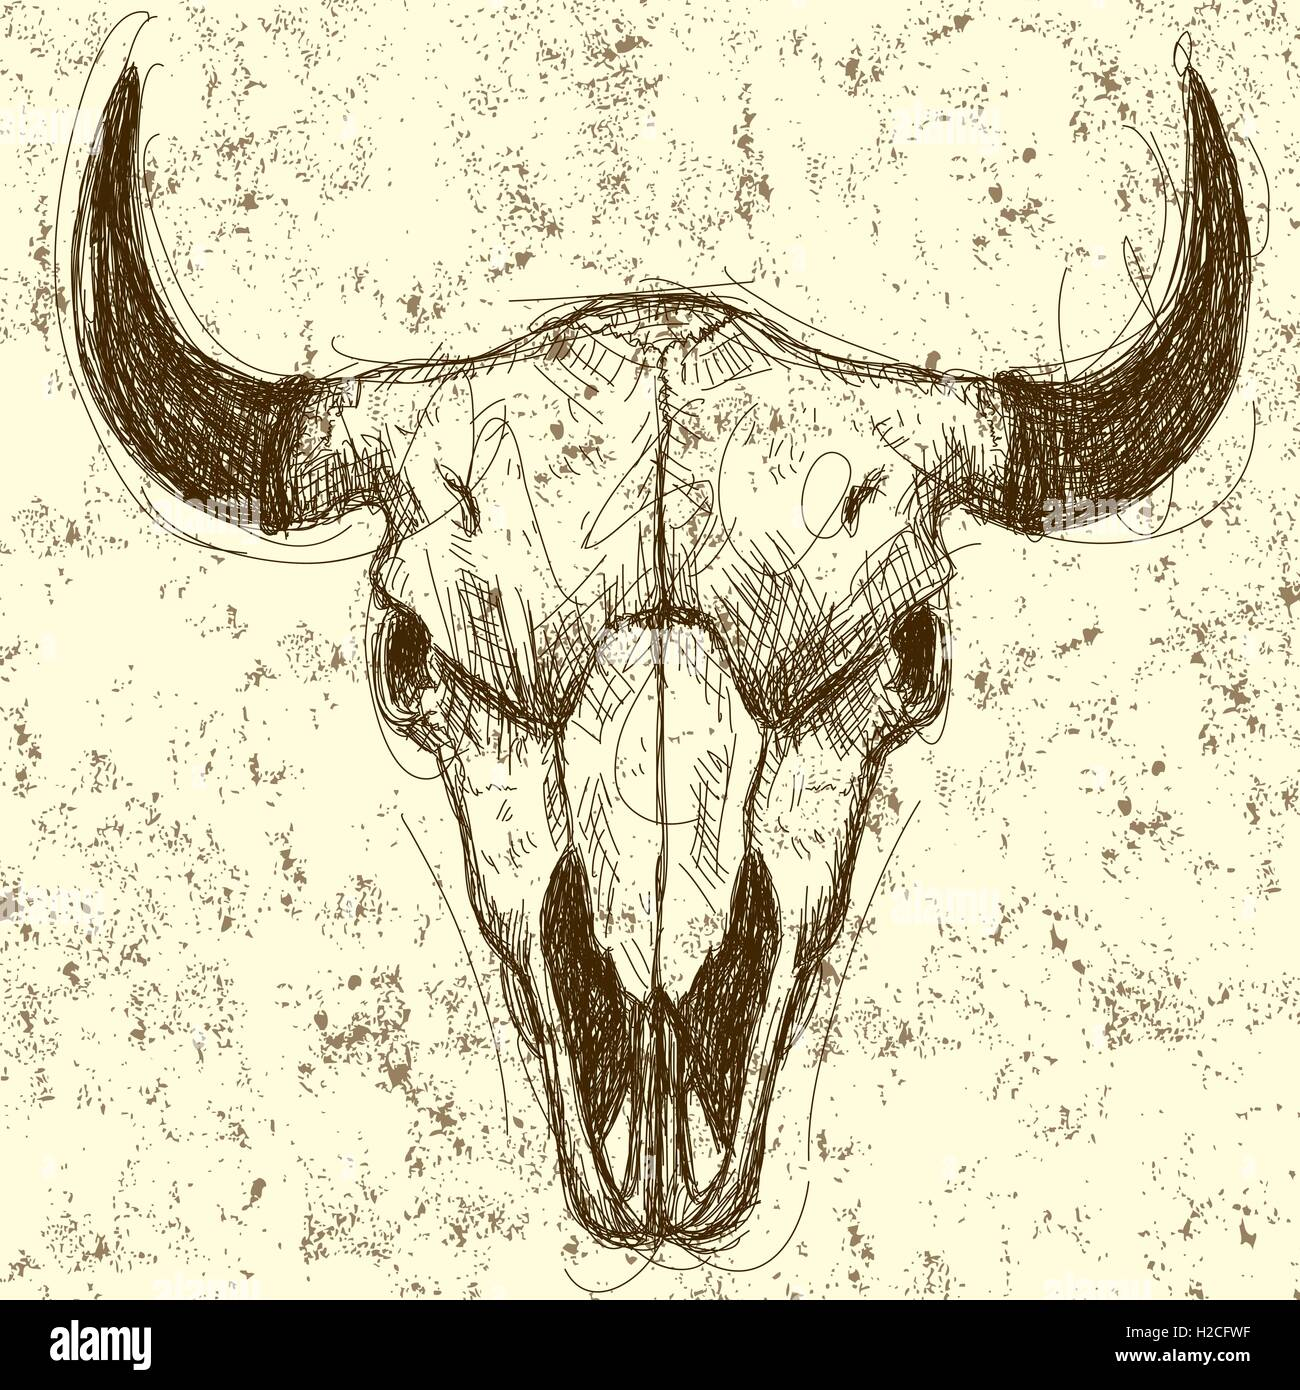 Cow skull Cow skull drawing over an abstract background. - Stock Image